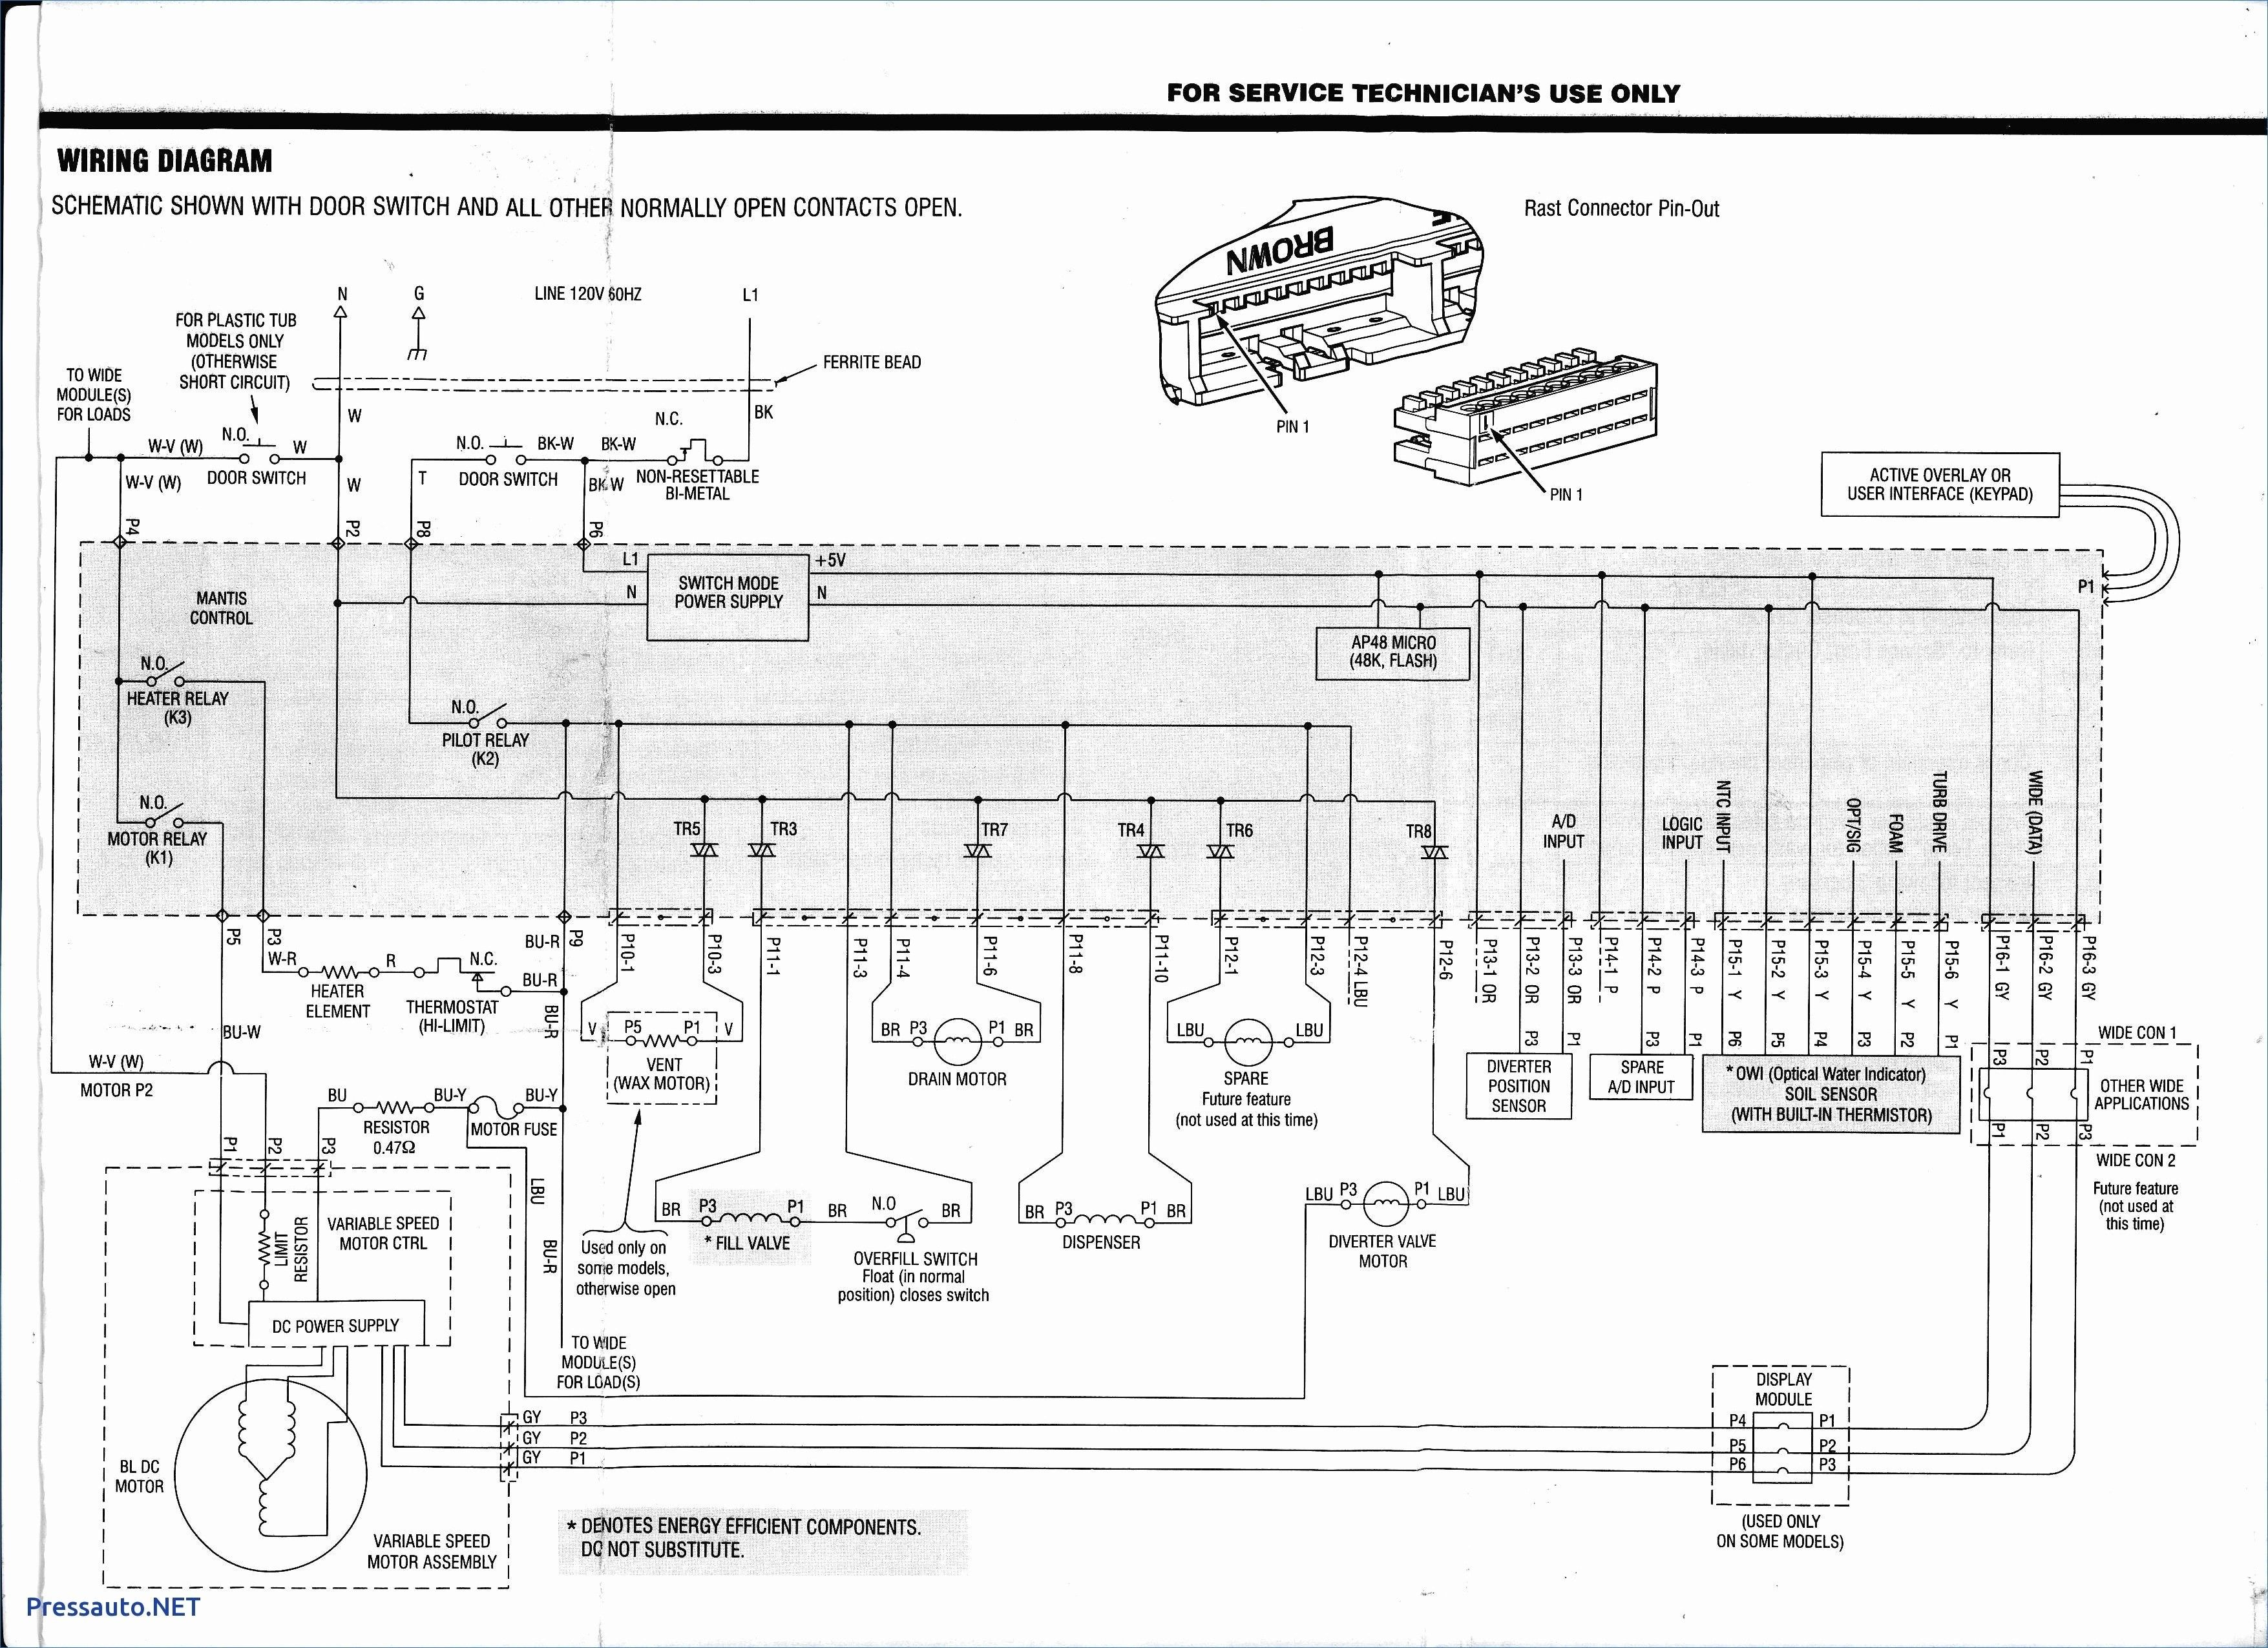 Unique Bosch Dishwasher Motor Wiring Diagram #diagram #diagramtemplate  #diagramsample Check more at https:… | Washing machine motor, Diagram, Whirlpool  refrigerator | Whirlpool Refrigerator Wiring Schematic |  | Pinterest